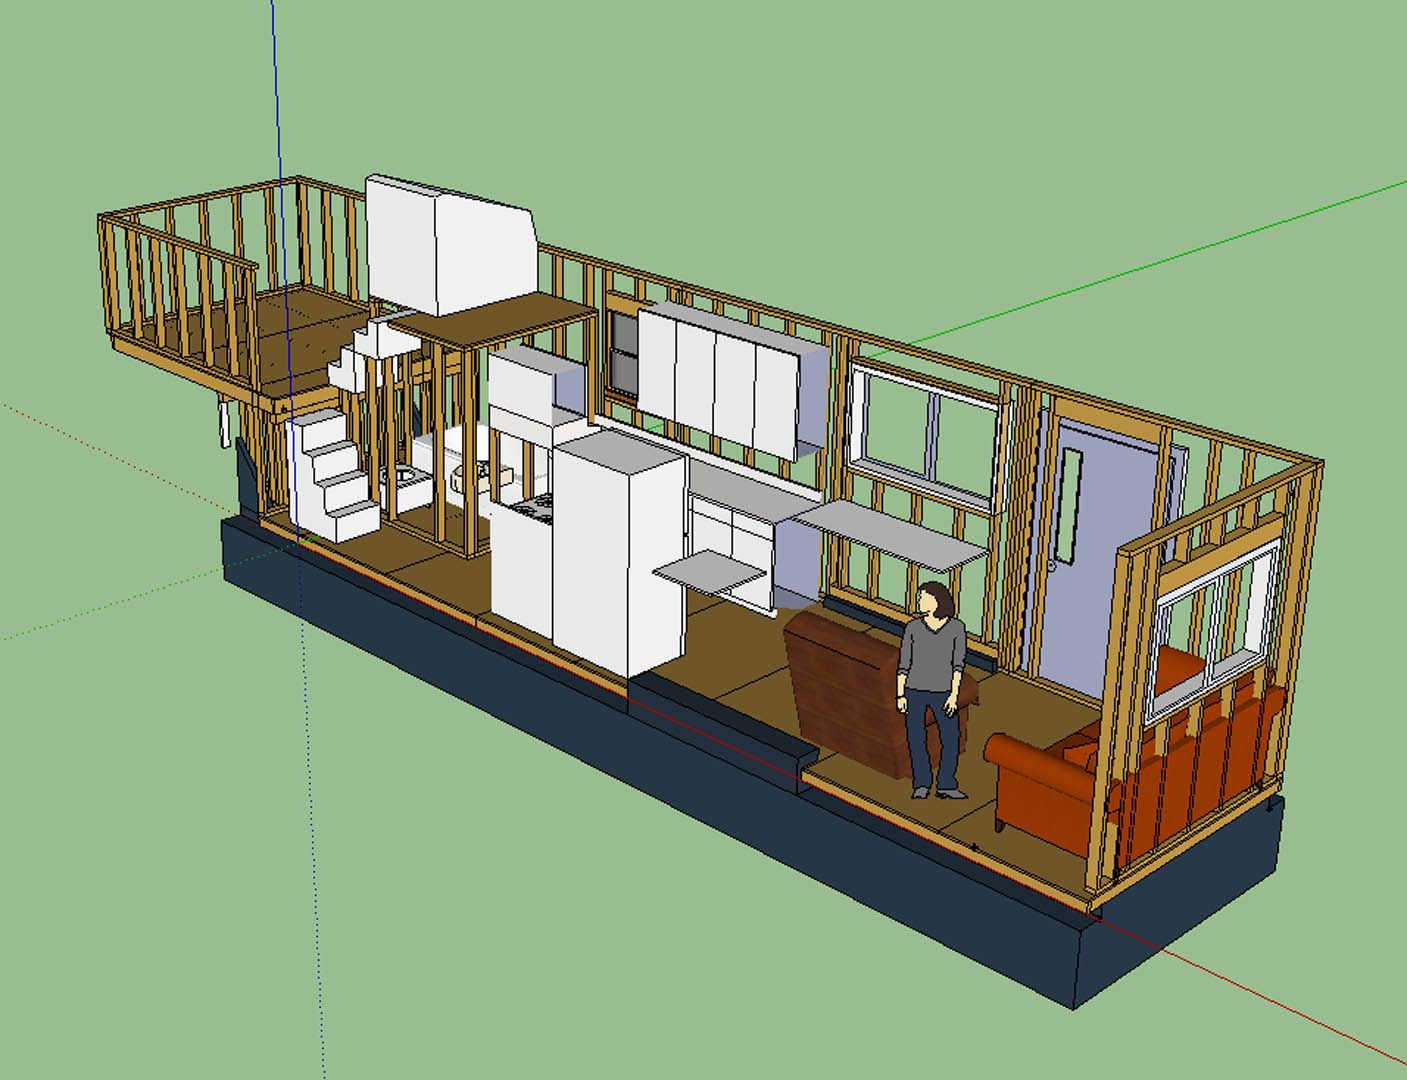 Tiny House Layout Has Master Bedroom Over Fifth Wheel Hitch, With Stairs Up  To